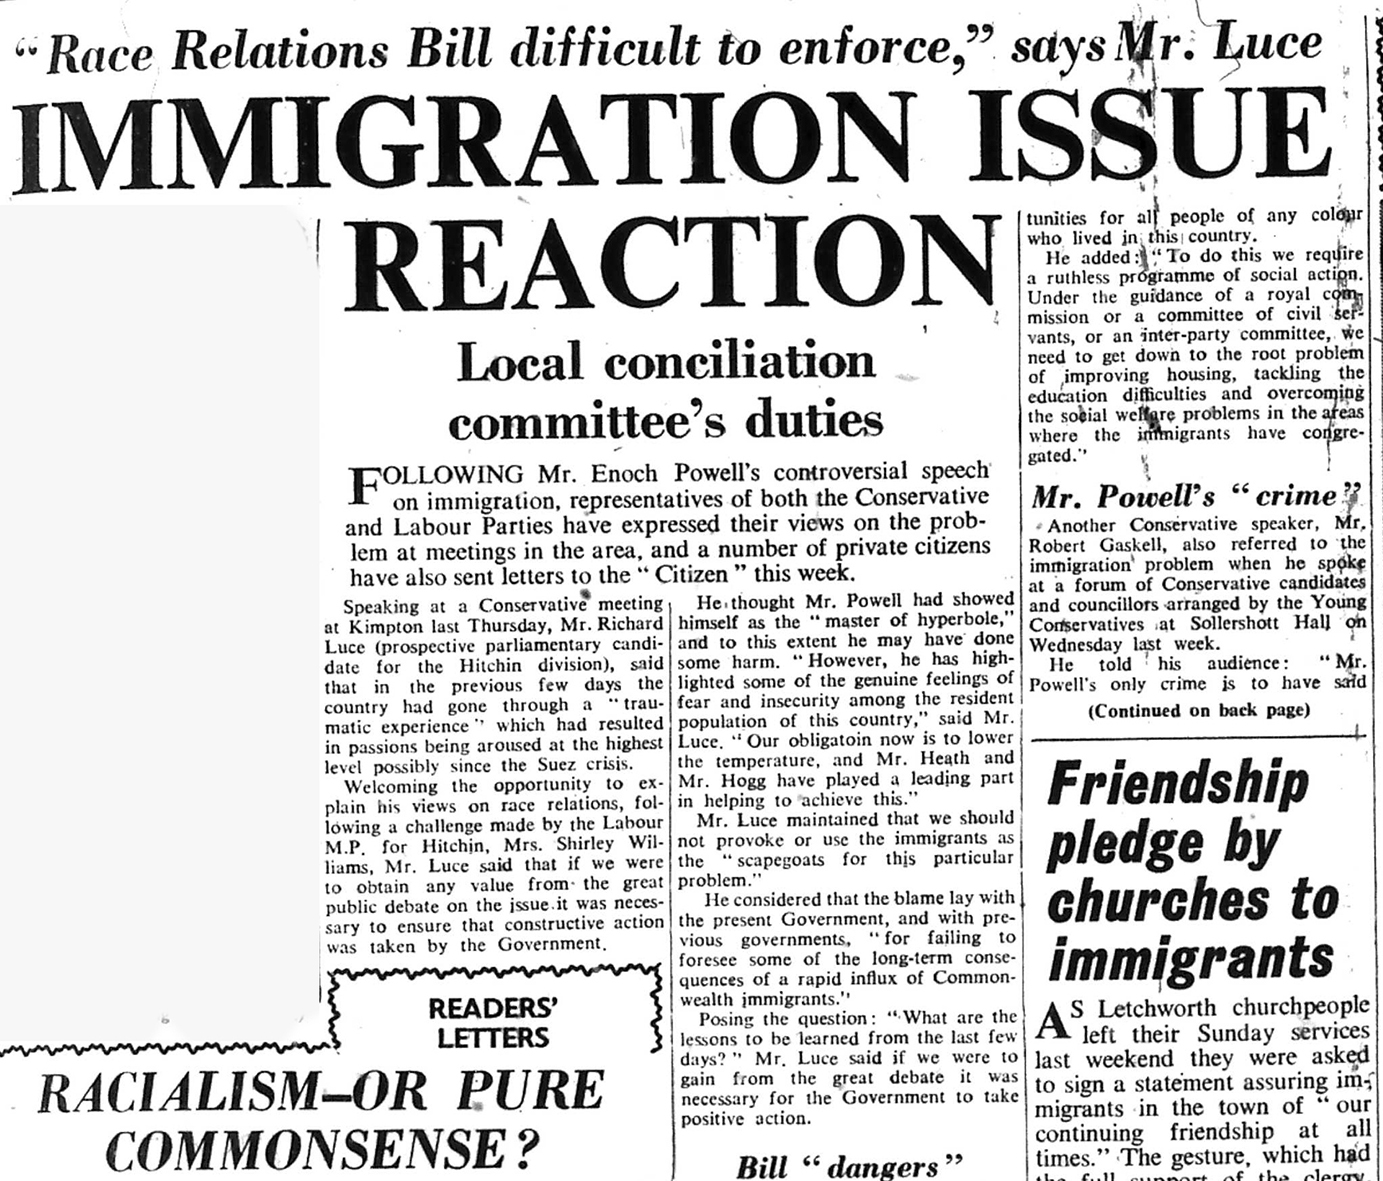 Newspaper articles on immigration issues | Herts and Beds Citizen, 3 May 1968